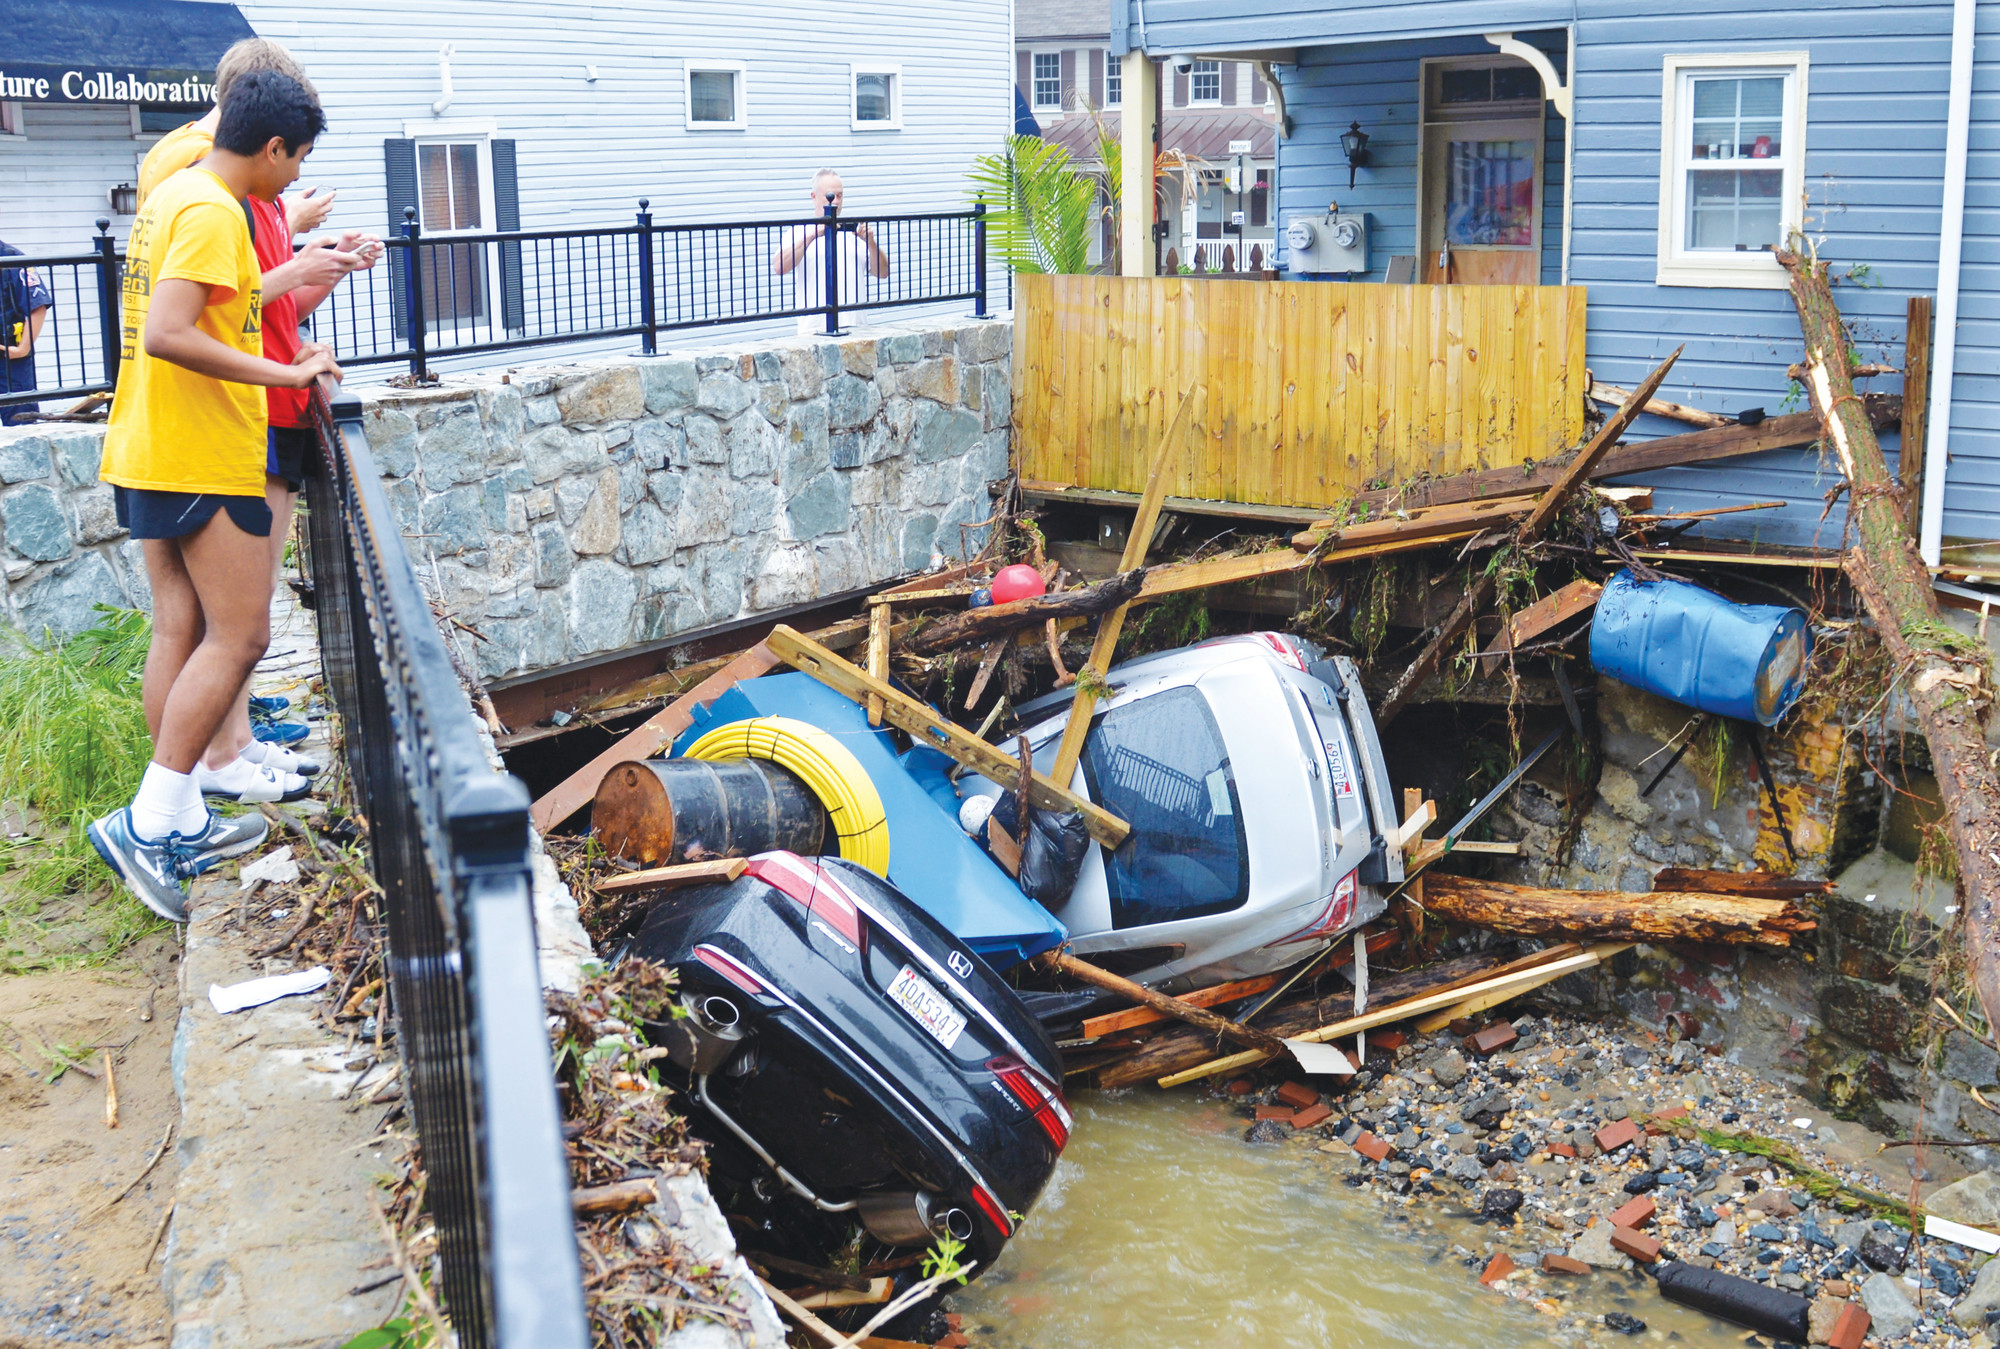 Flooded residents in Maryland wonder about rebuilding | The Sumter Item